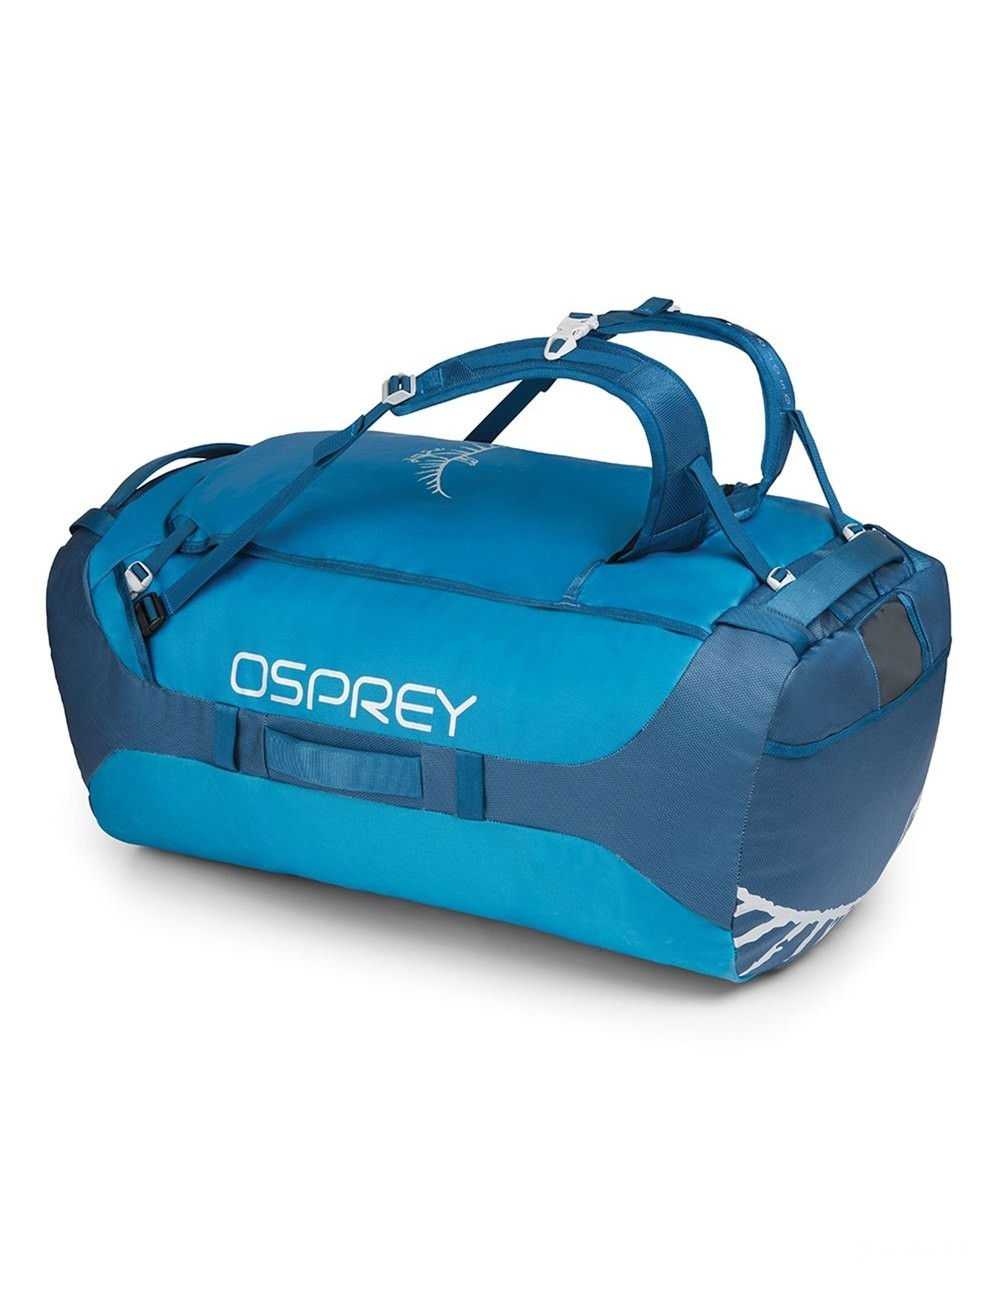 [BLACK FRIDAY] Osprey Sac duffel bag - Transporter 130 Kingfisher Blue - Marque